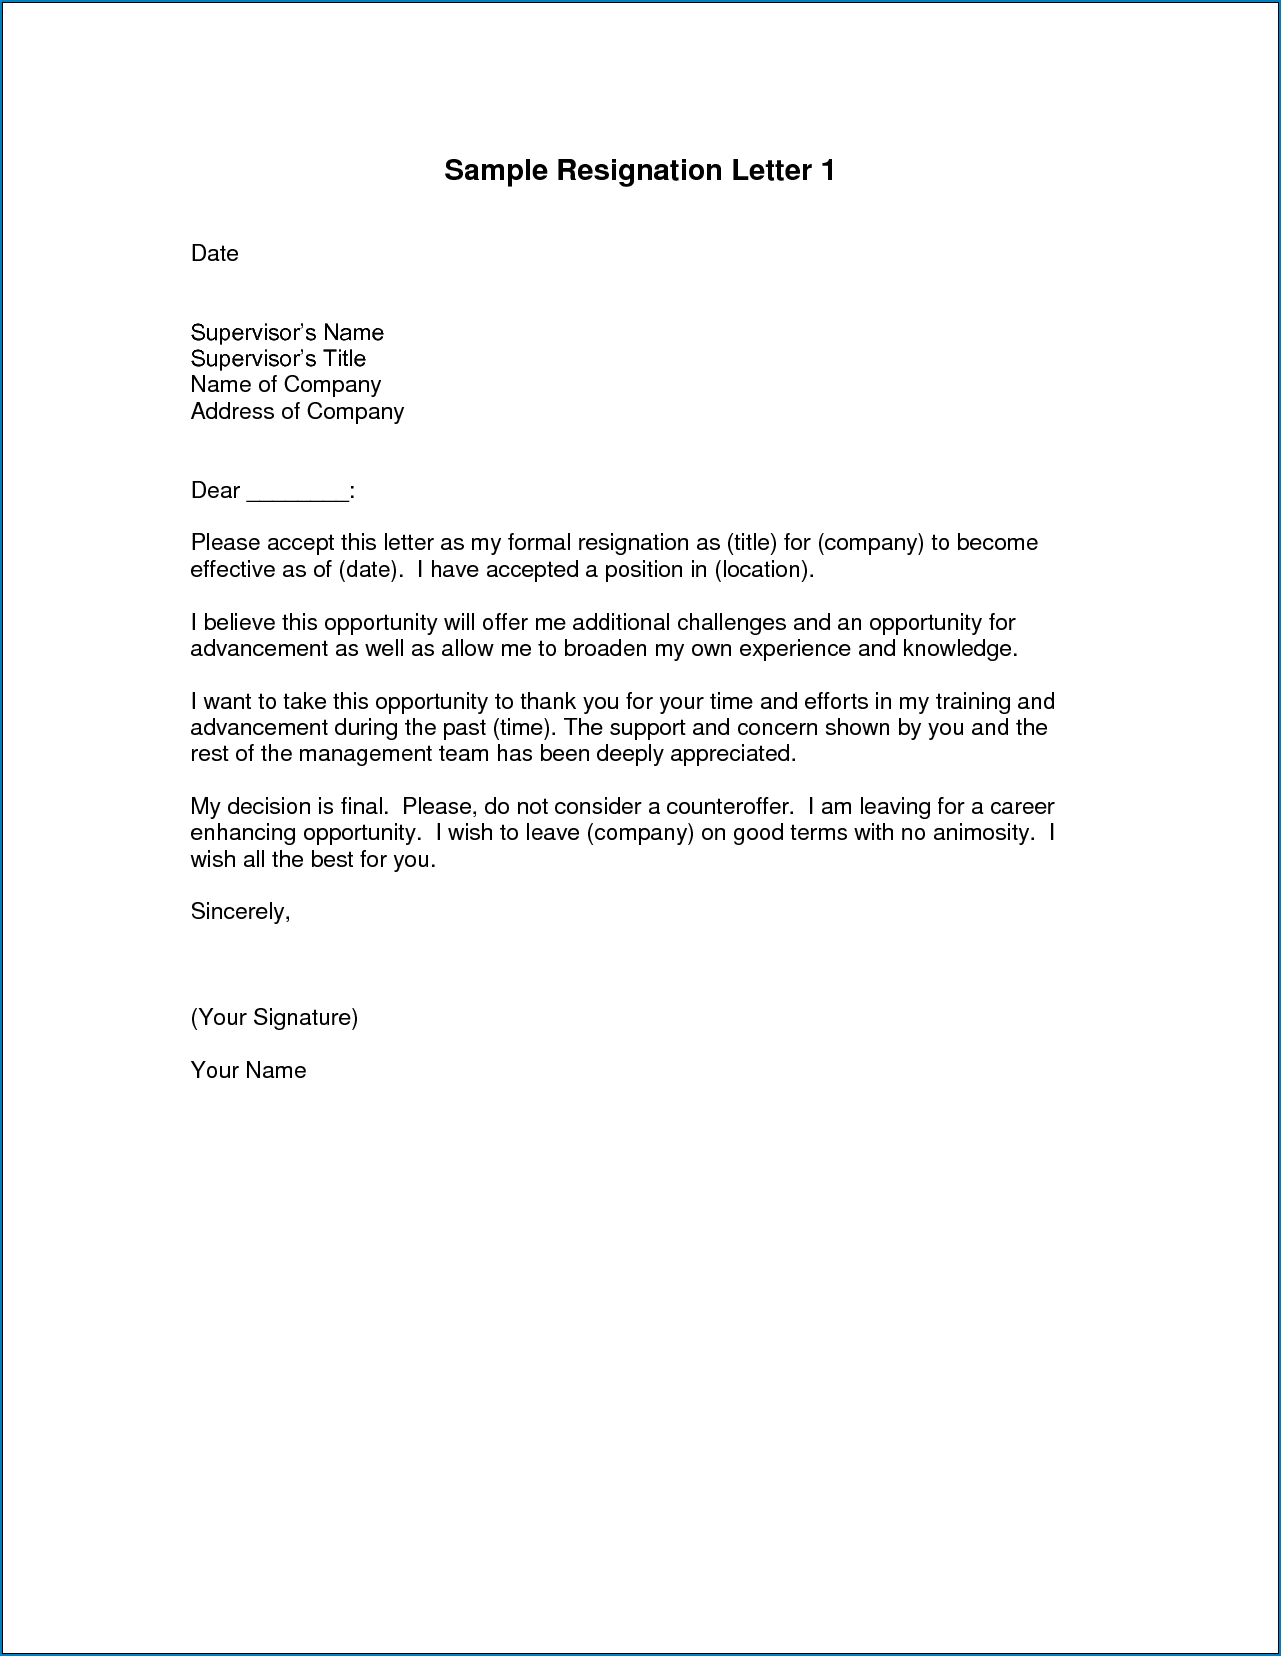 Example of Best Resignation Letter Template